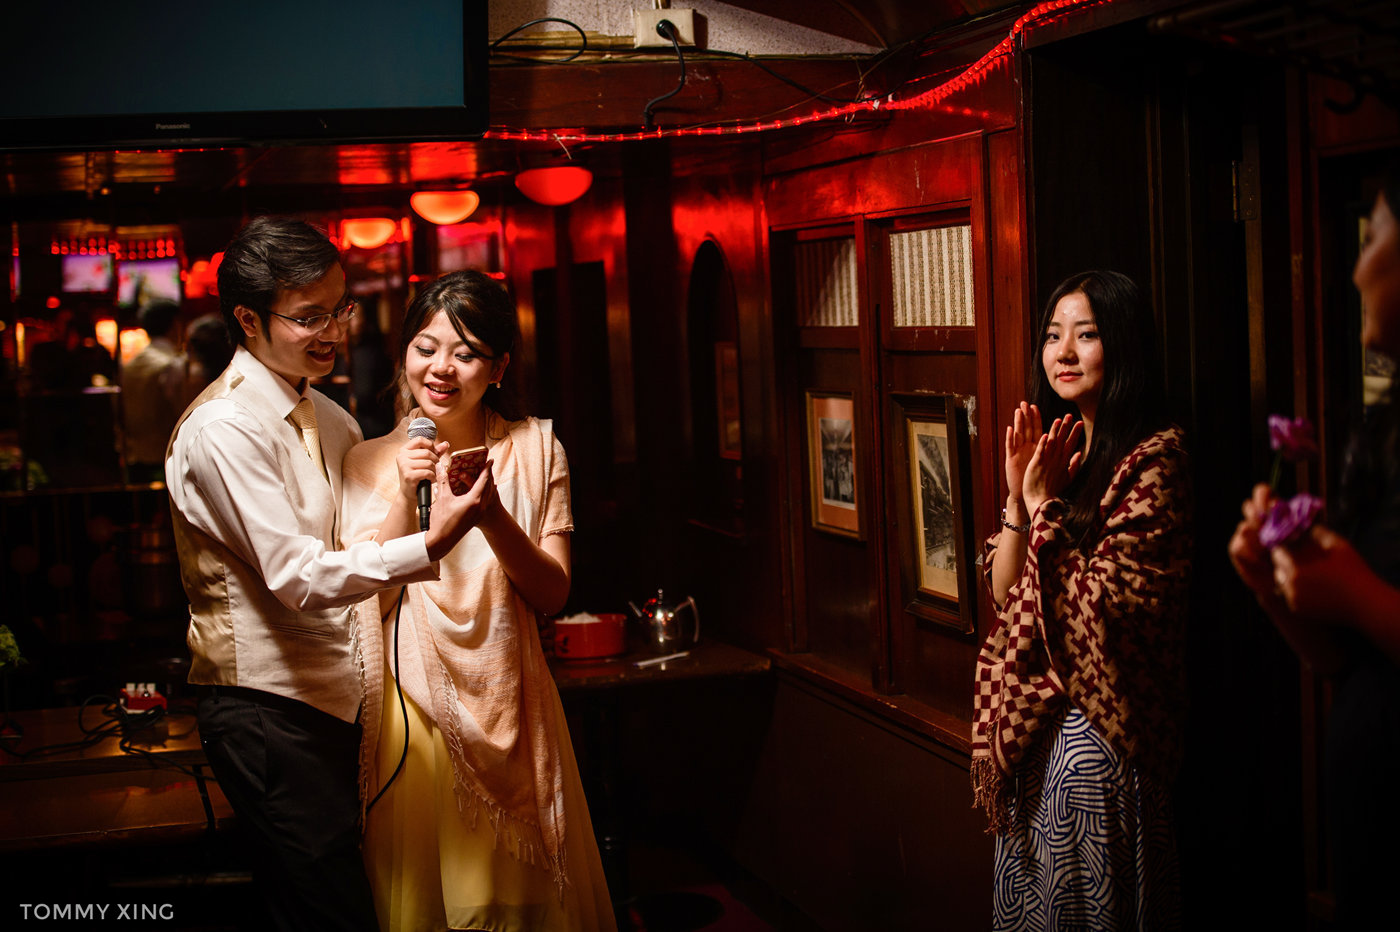 Seattle Wedding and pre wedding Los Angeles Tommy Xing Photography 西雅图洛杉矶旧金山婚礼婚纱照摄影师 197.jpg